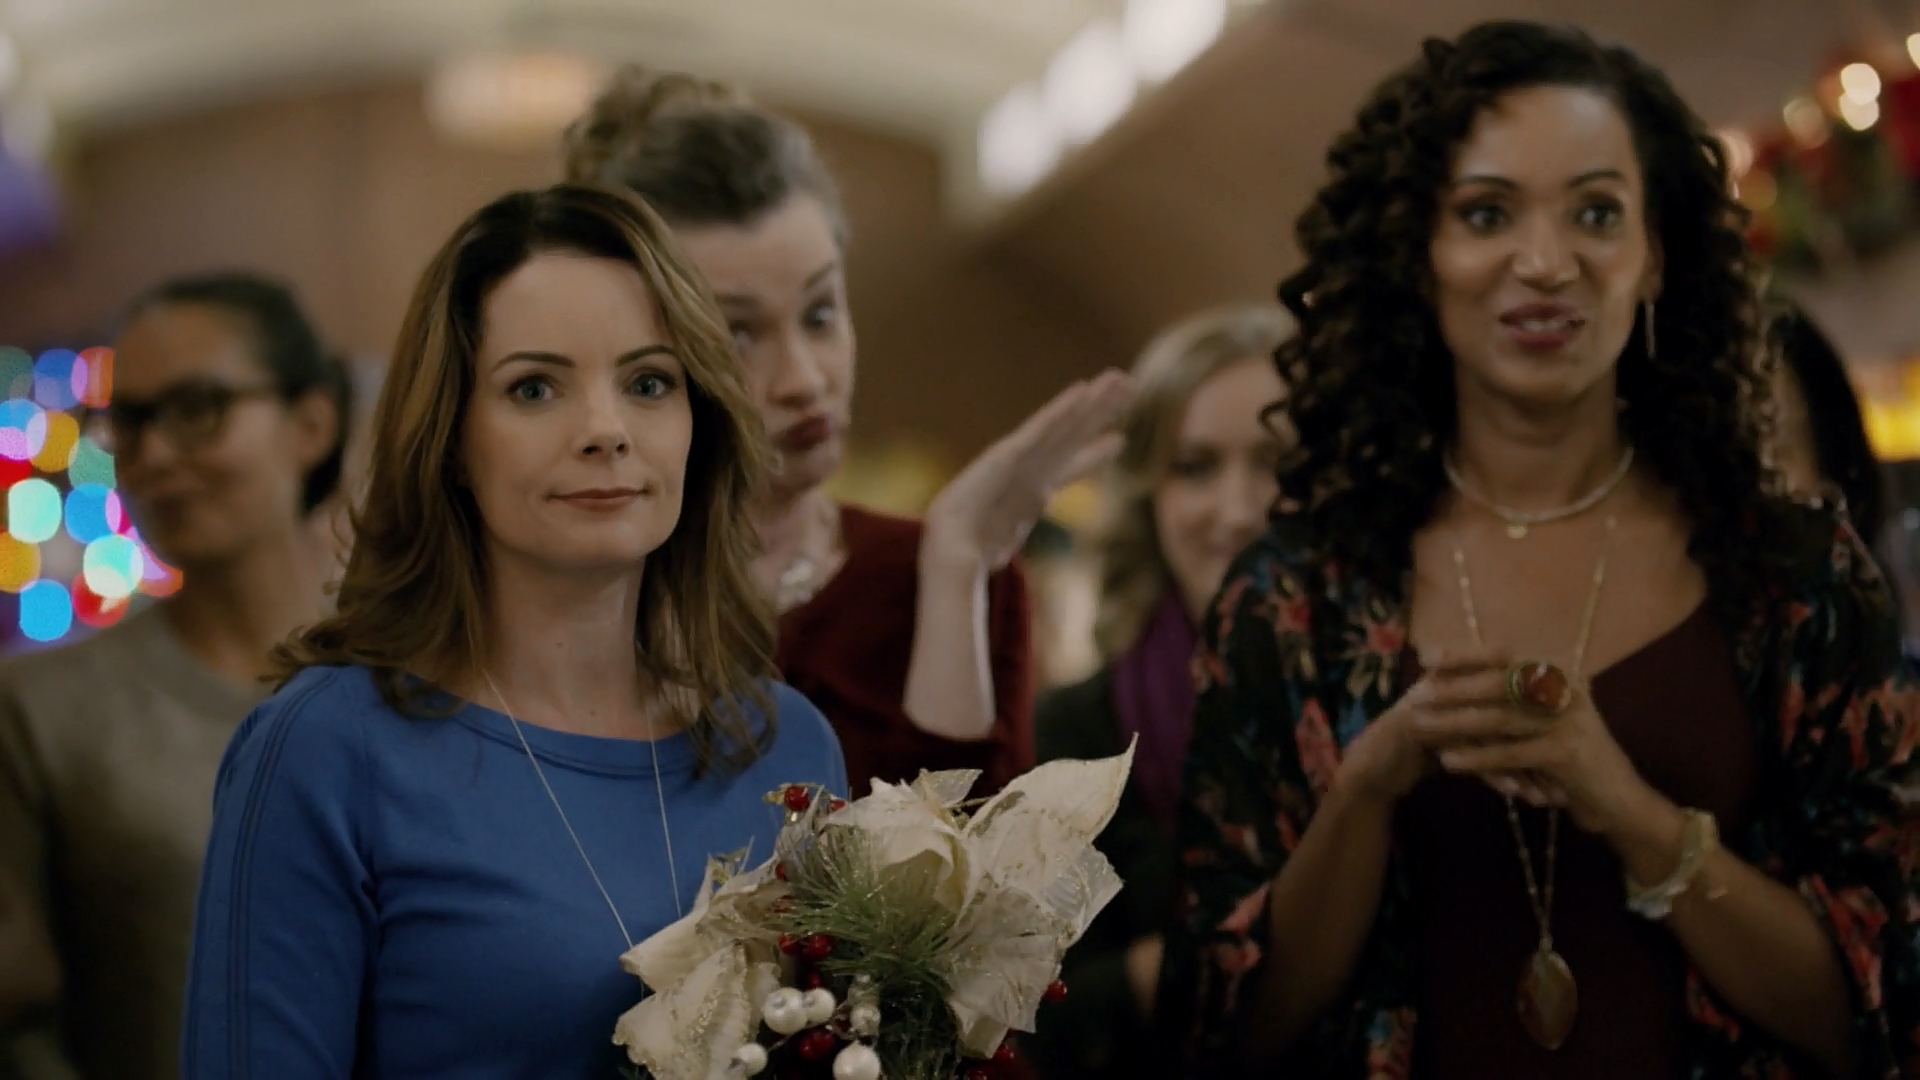 Joan Cusack, Karen Holness, and Kimberly Williams-Paisley in The Christmas Train (2017)